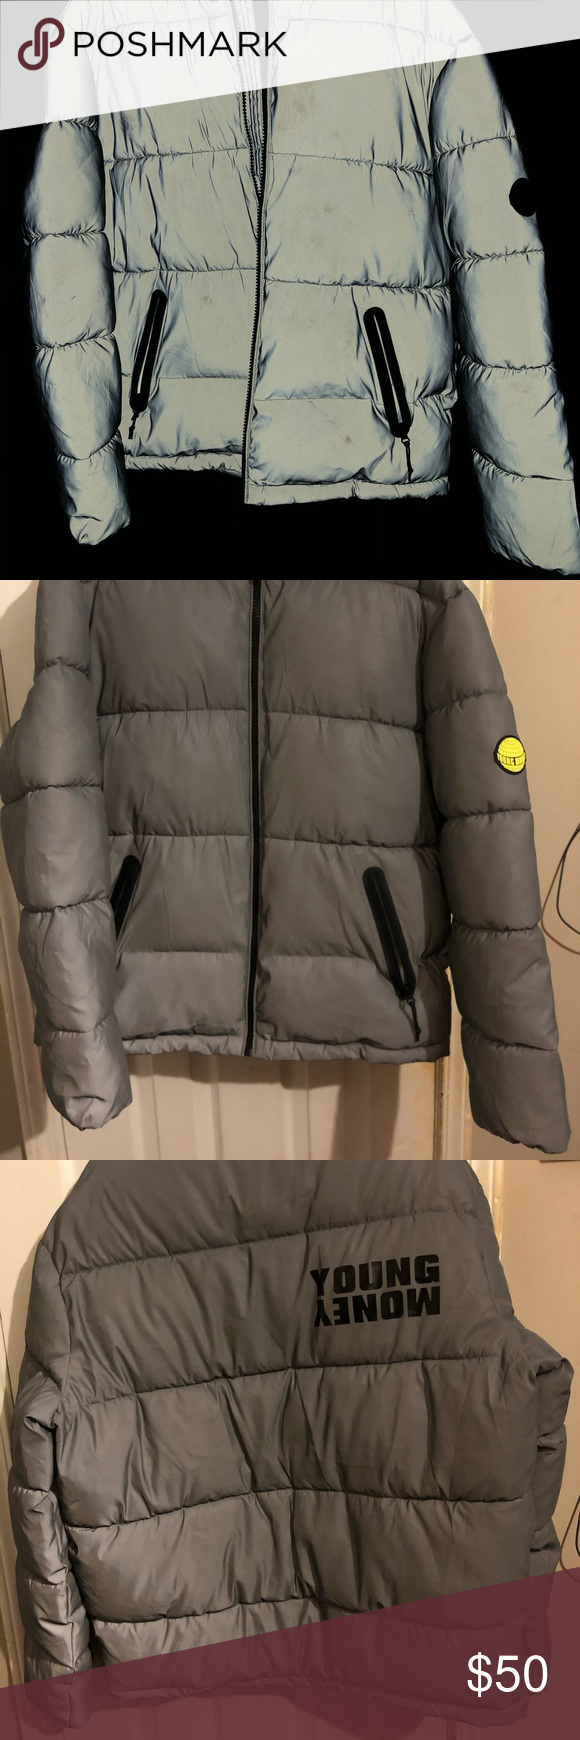 American Eagle Aex Young Money 3m Jacket American Eagle Jackets Young Money [ 1740 x 580 Pixel ]